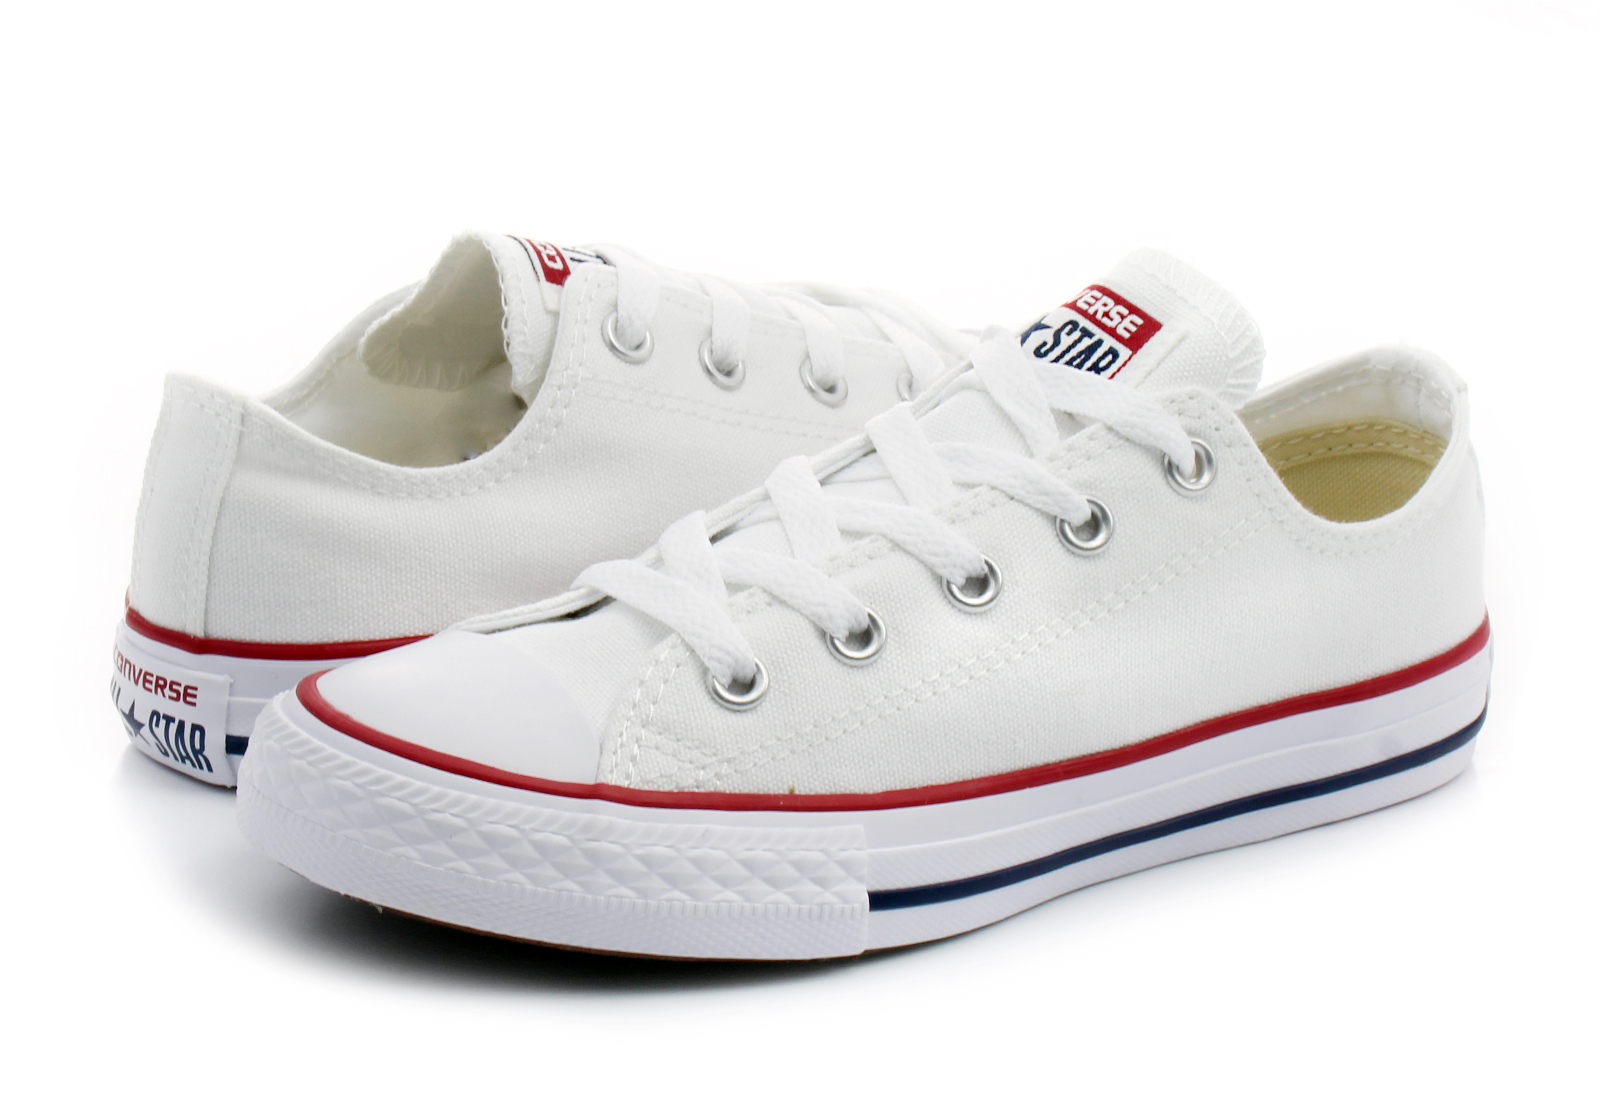 fce8c0c688b13a Converse Sneakers - Ct As Kids Core Ox - 3J256C - Online shop for ...